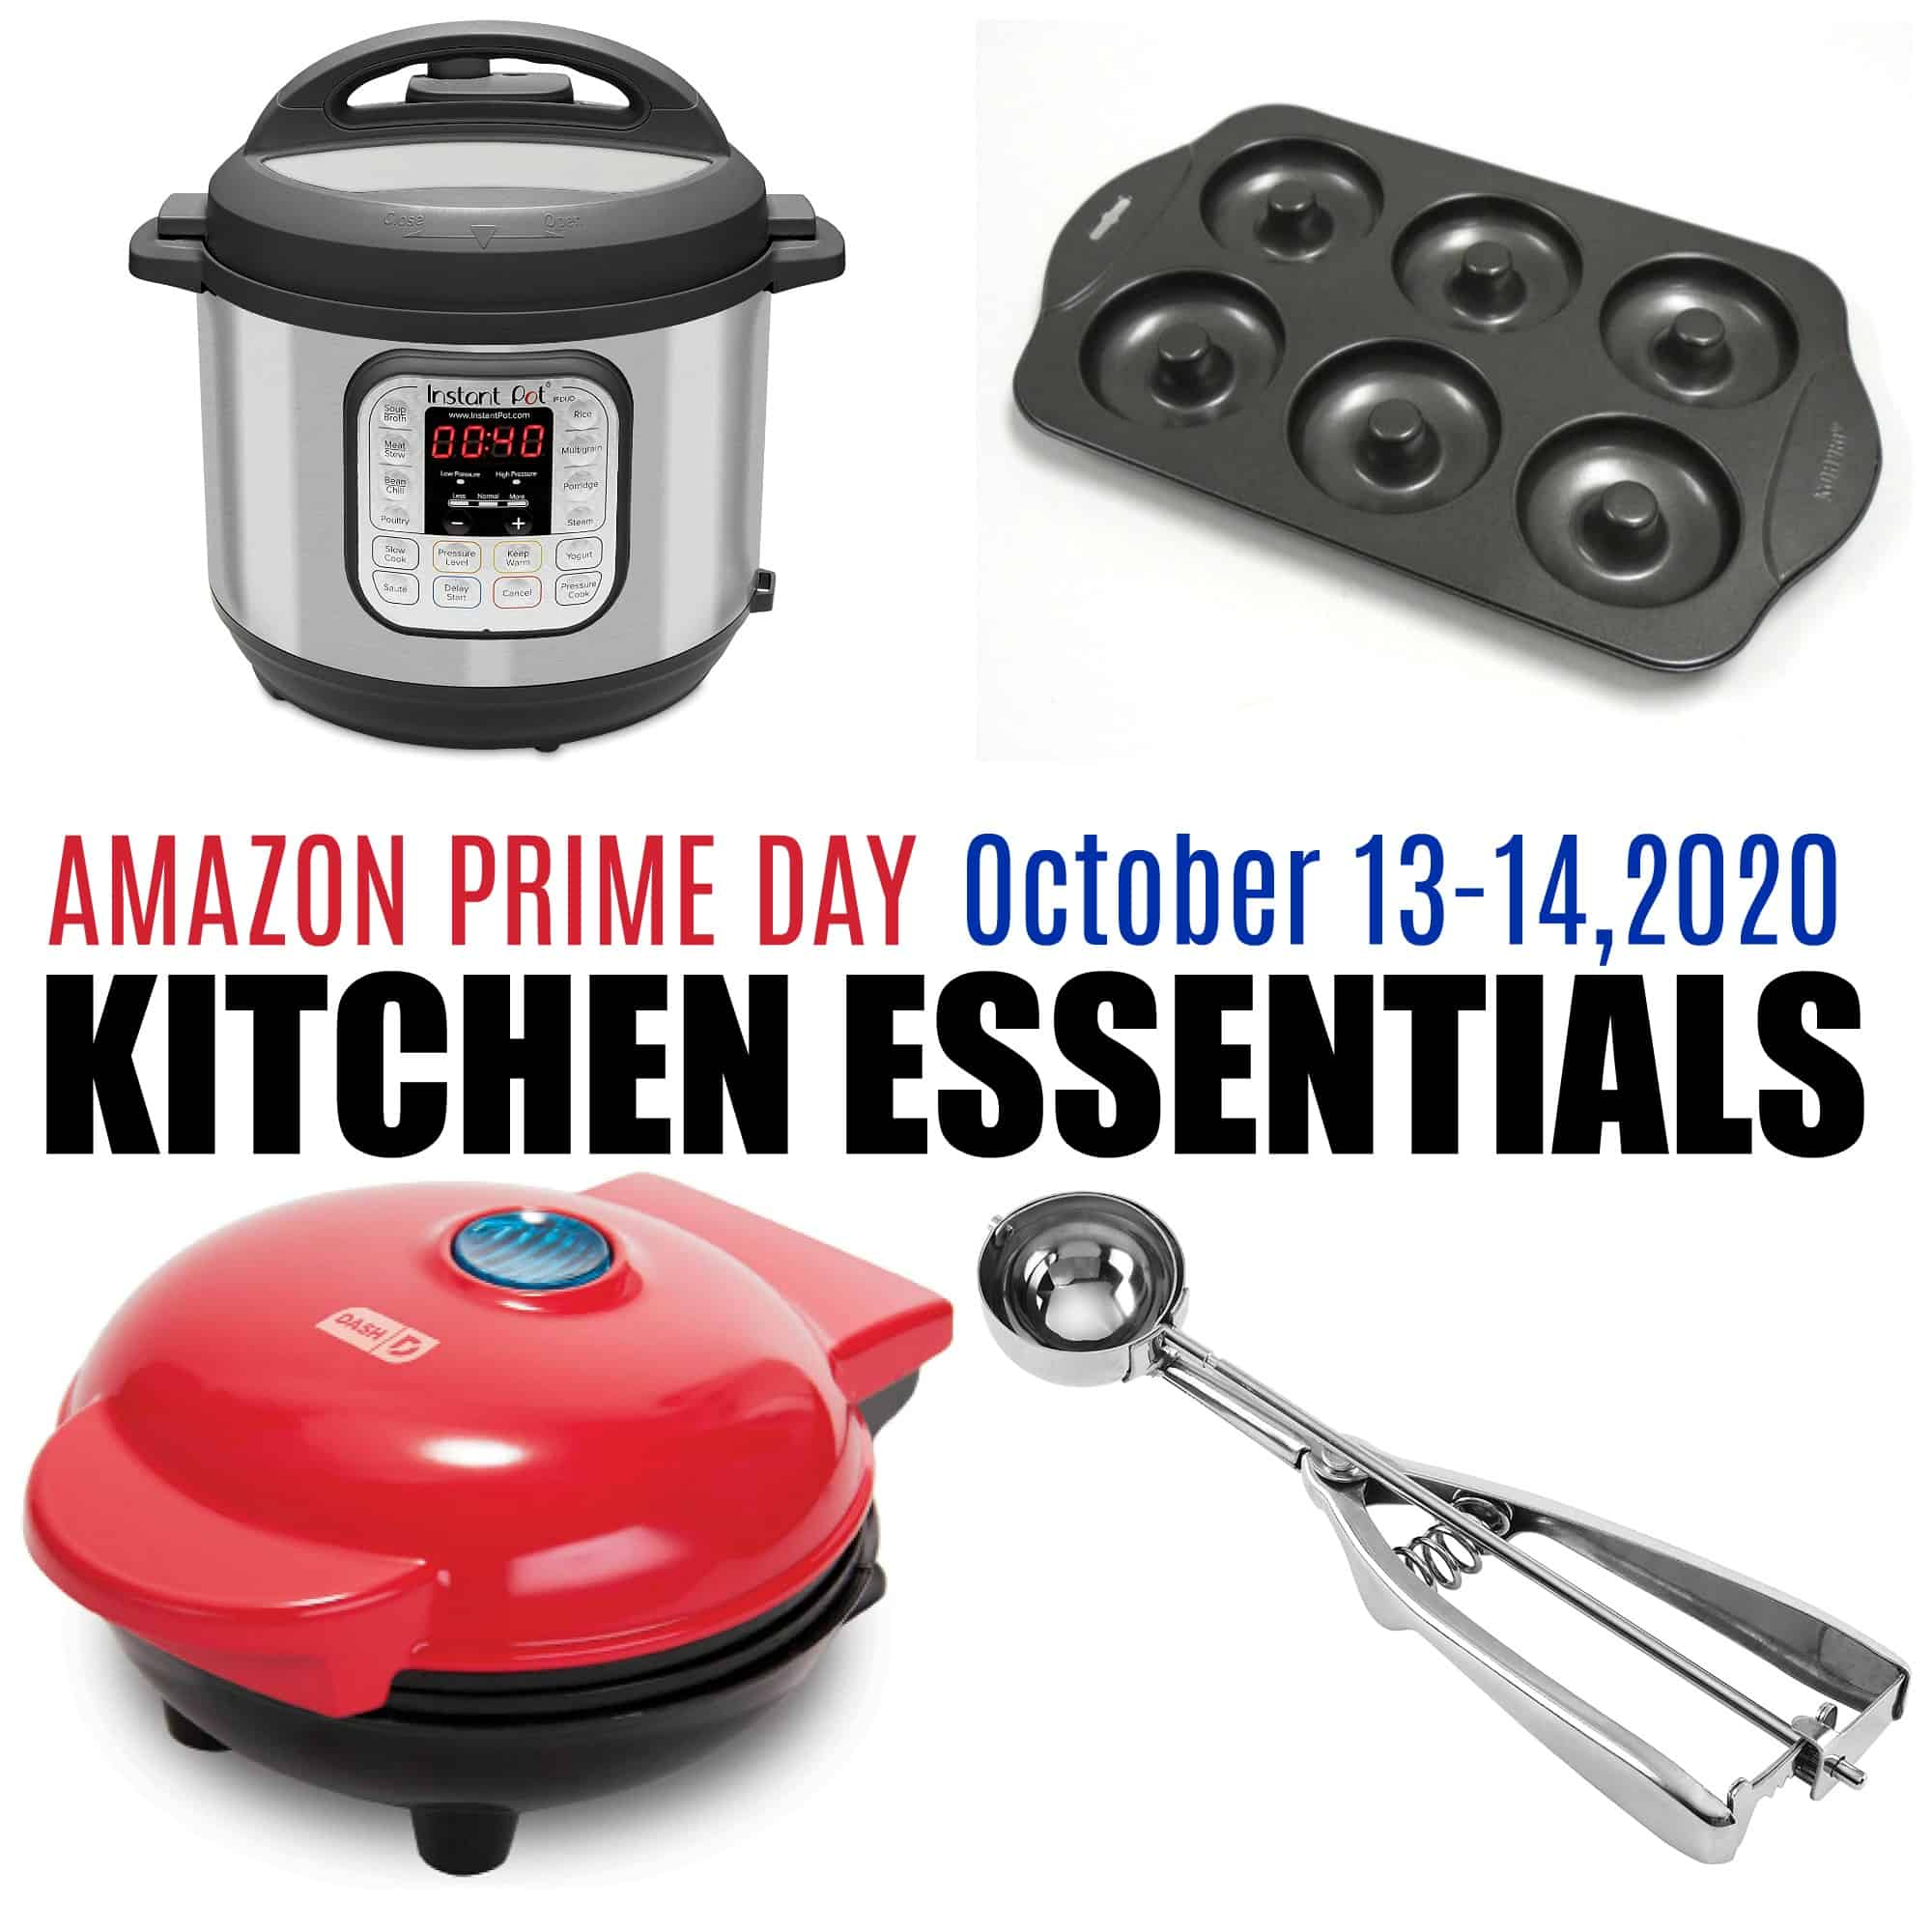 Four basic kitchen essentials, including instant pot, donut pan, and more.